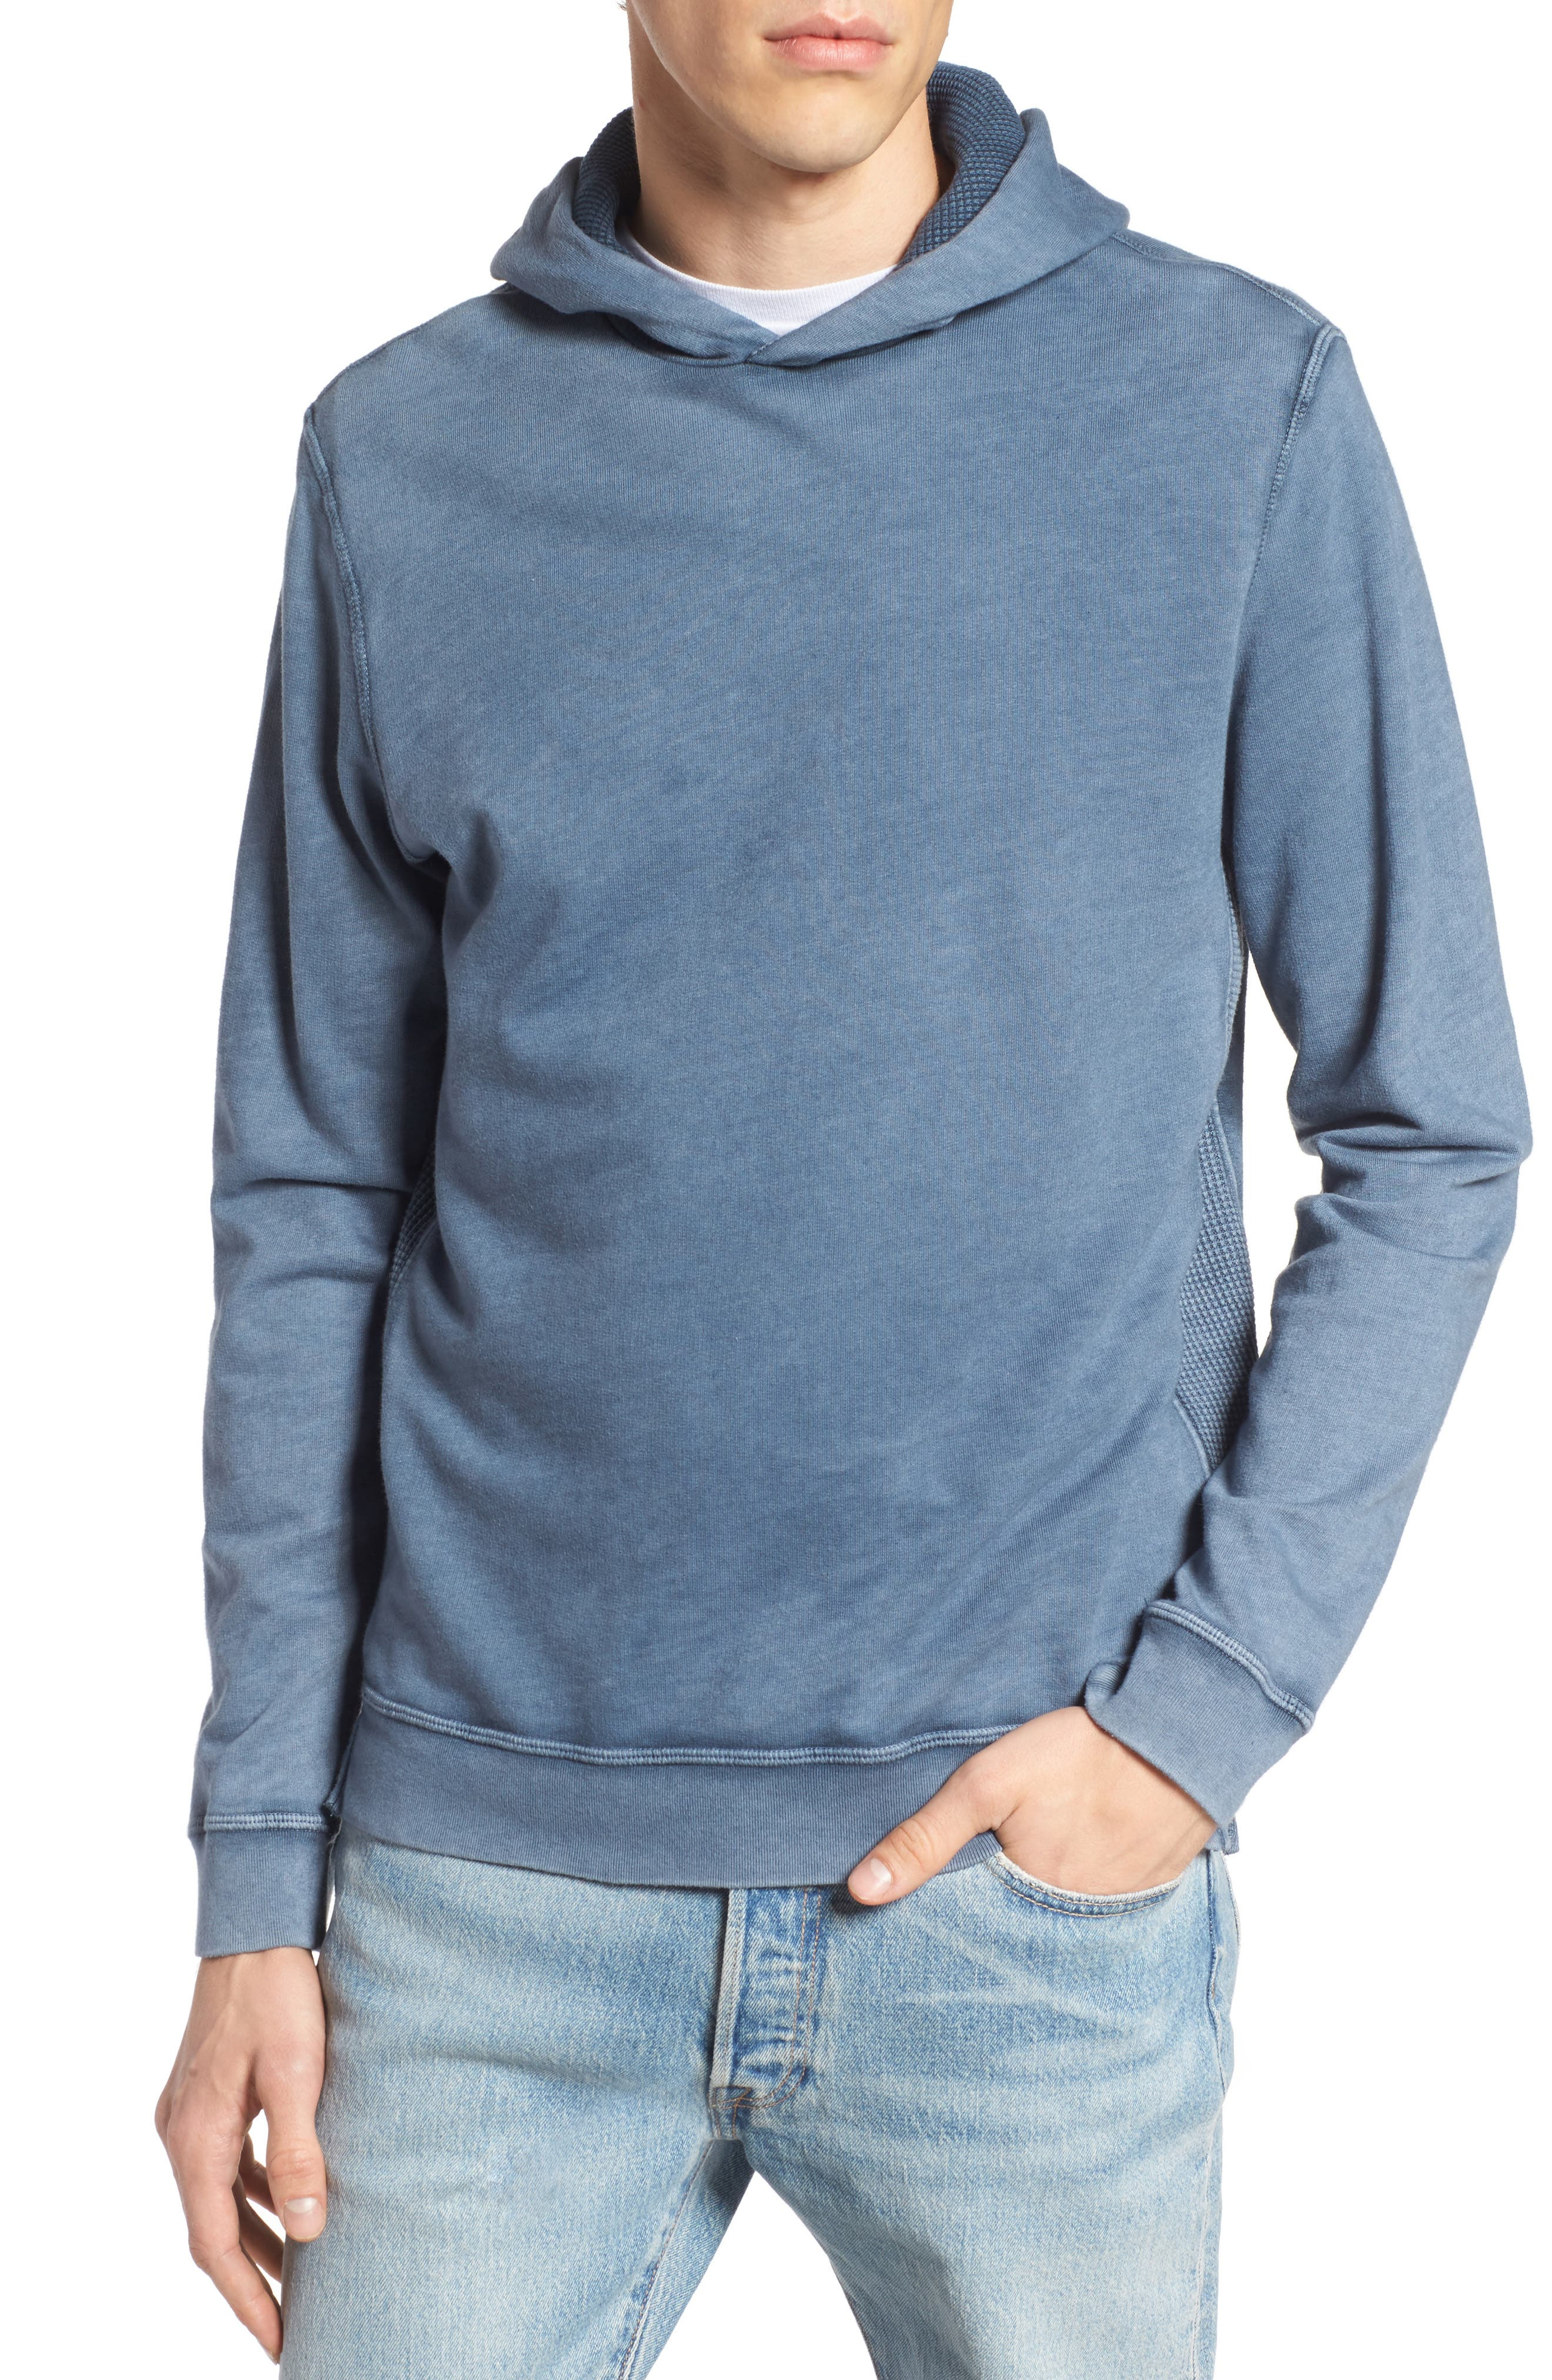 Max Slim Pullover Hoodie,                             Main thumbnail 1, color,                             406